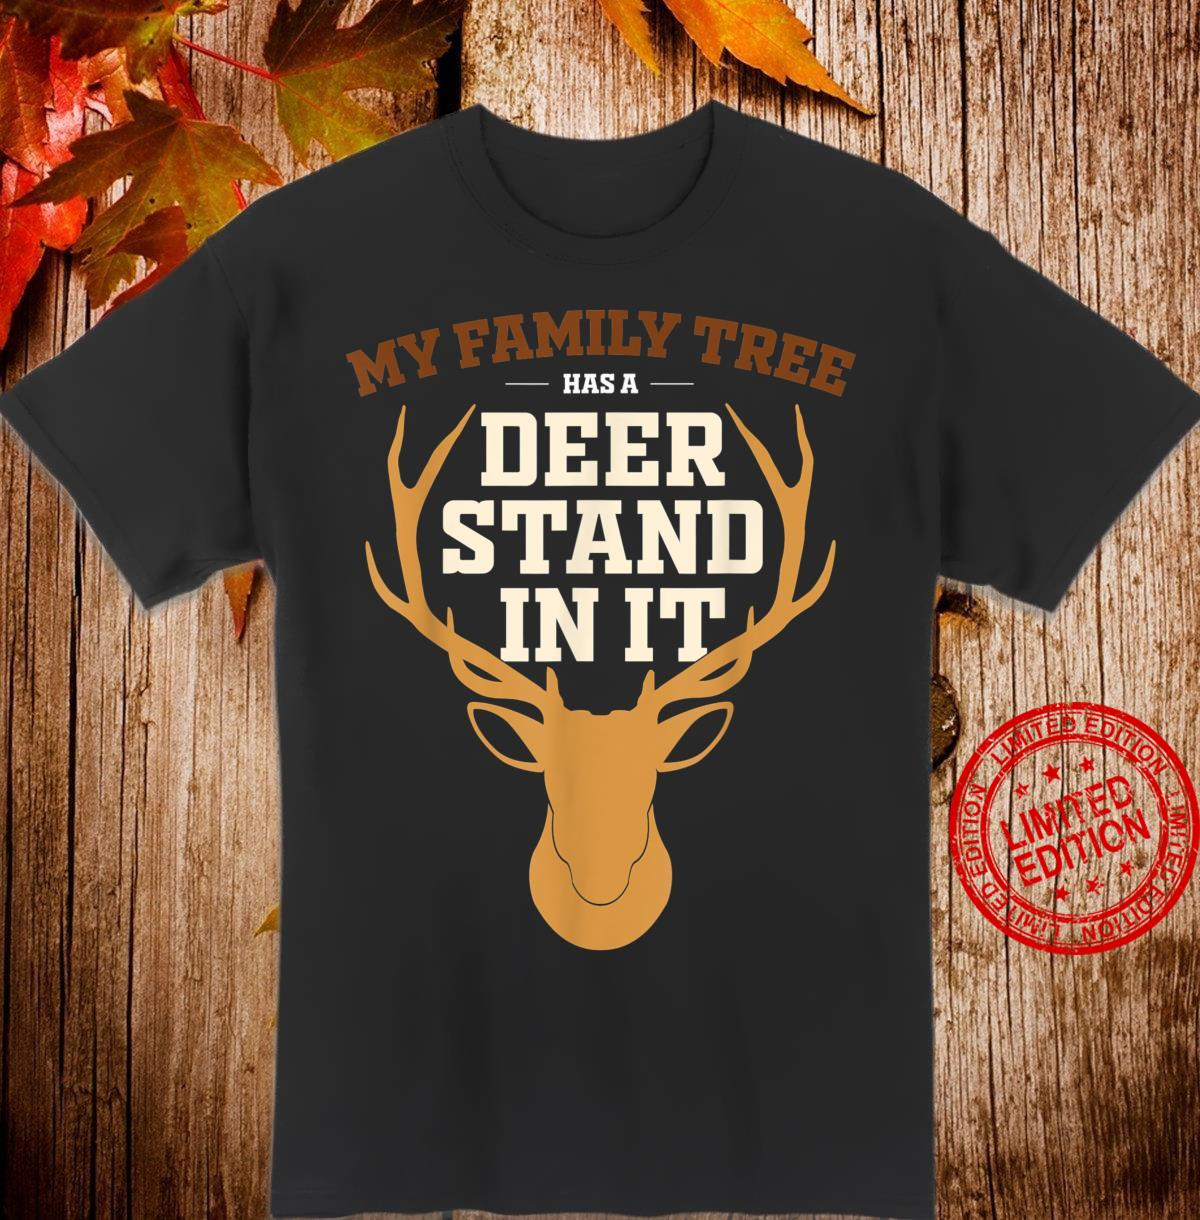 My Family Tree Has a Deer Stand In It Hunting Shirt